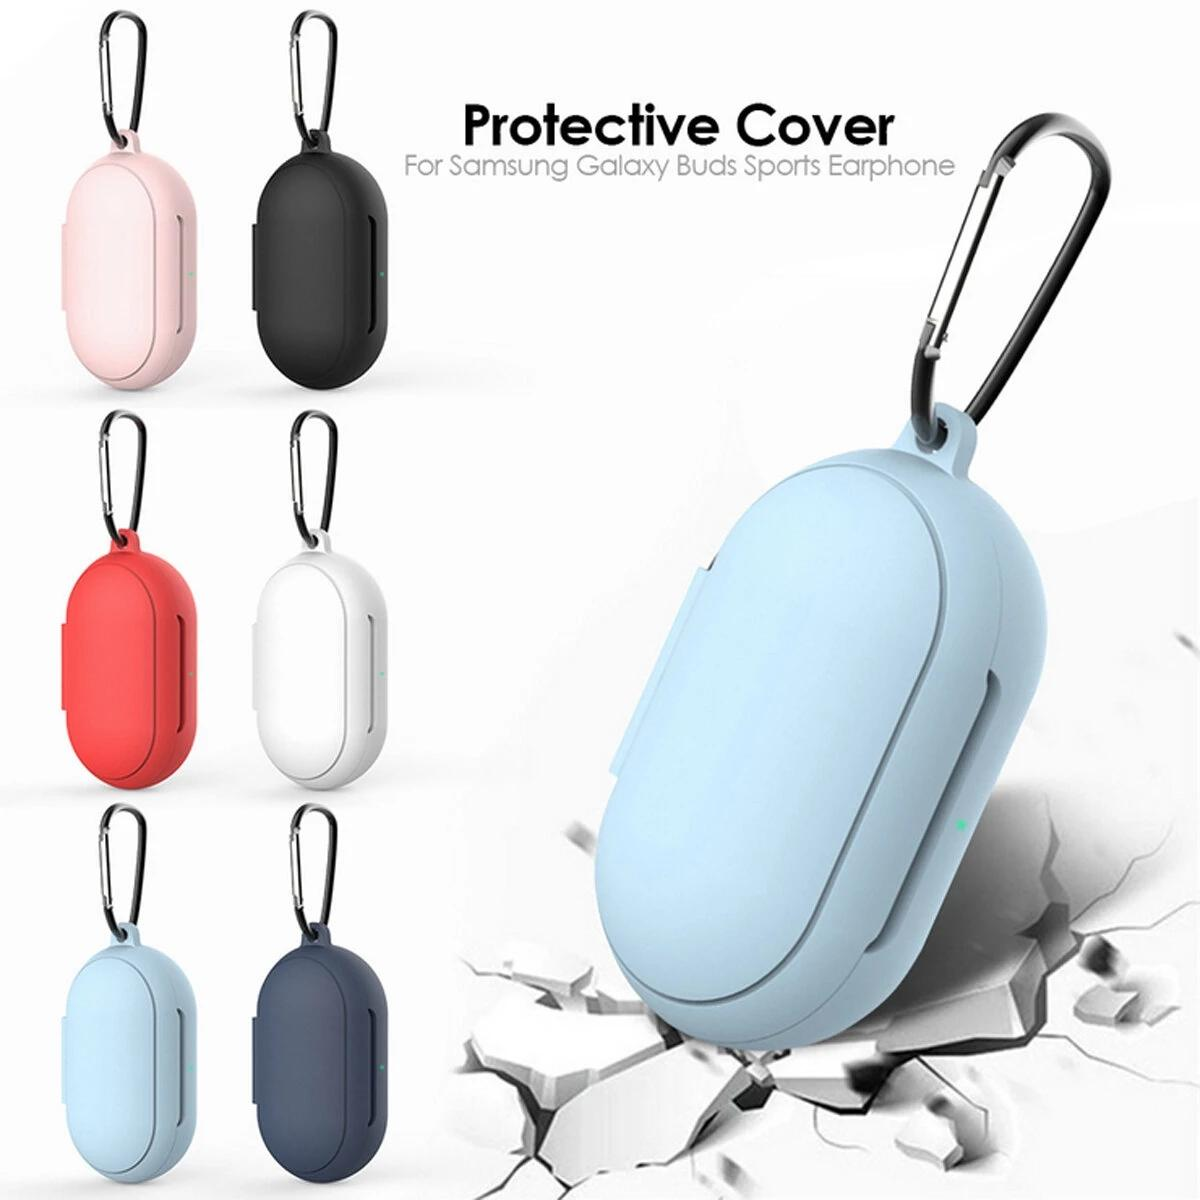 Earphone Silicone Case Keychain Support Wireless Charging Cover TWS Headphone Protective Shell With Anti-lost For Galaxy Buds - Red